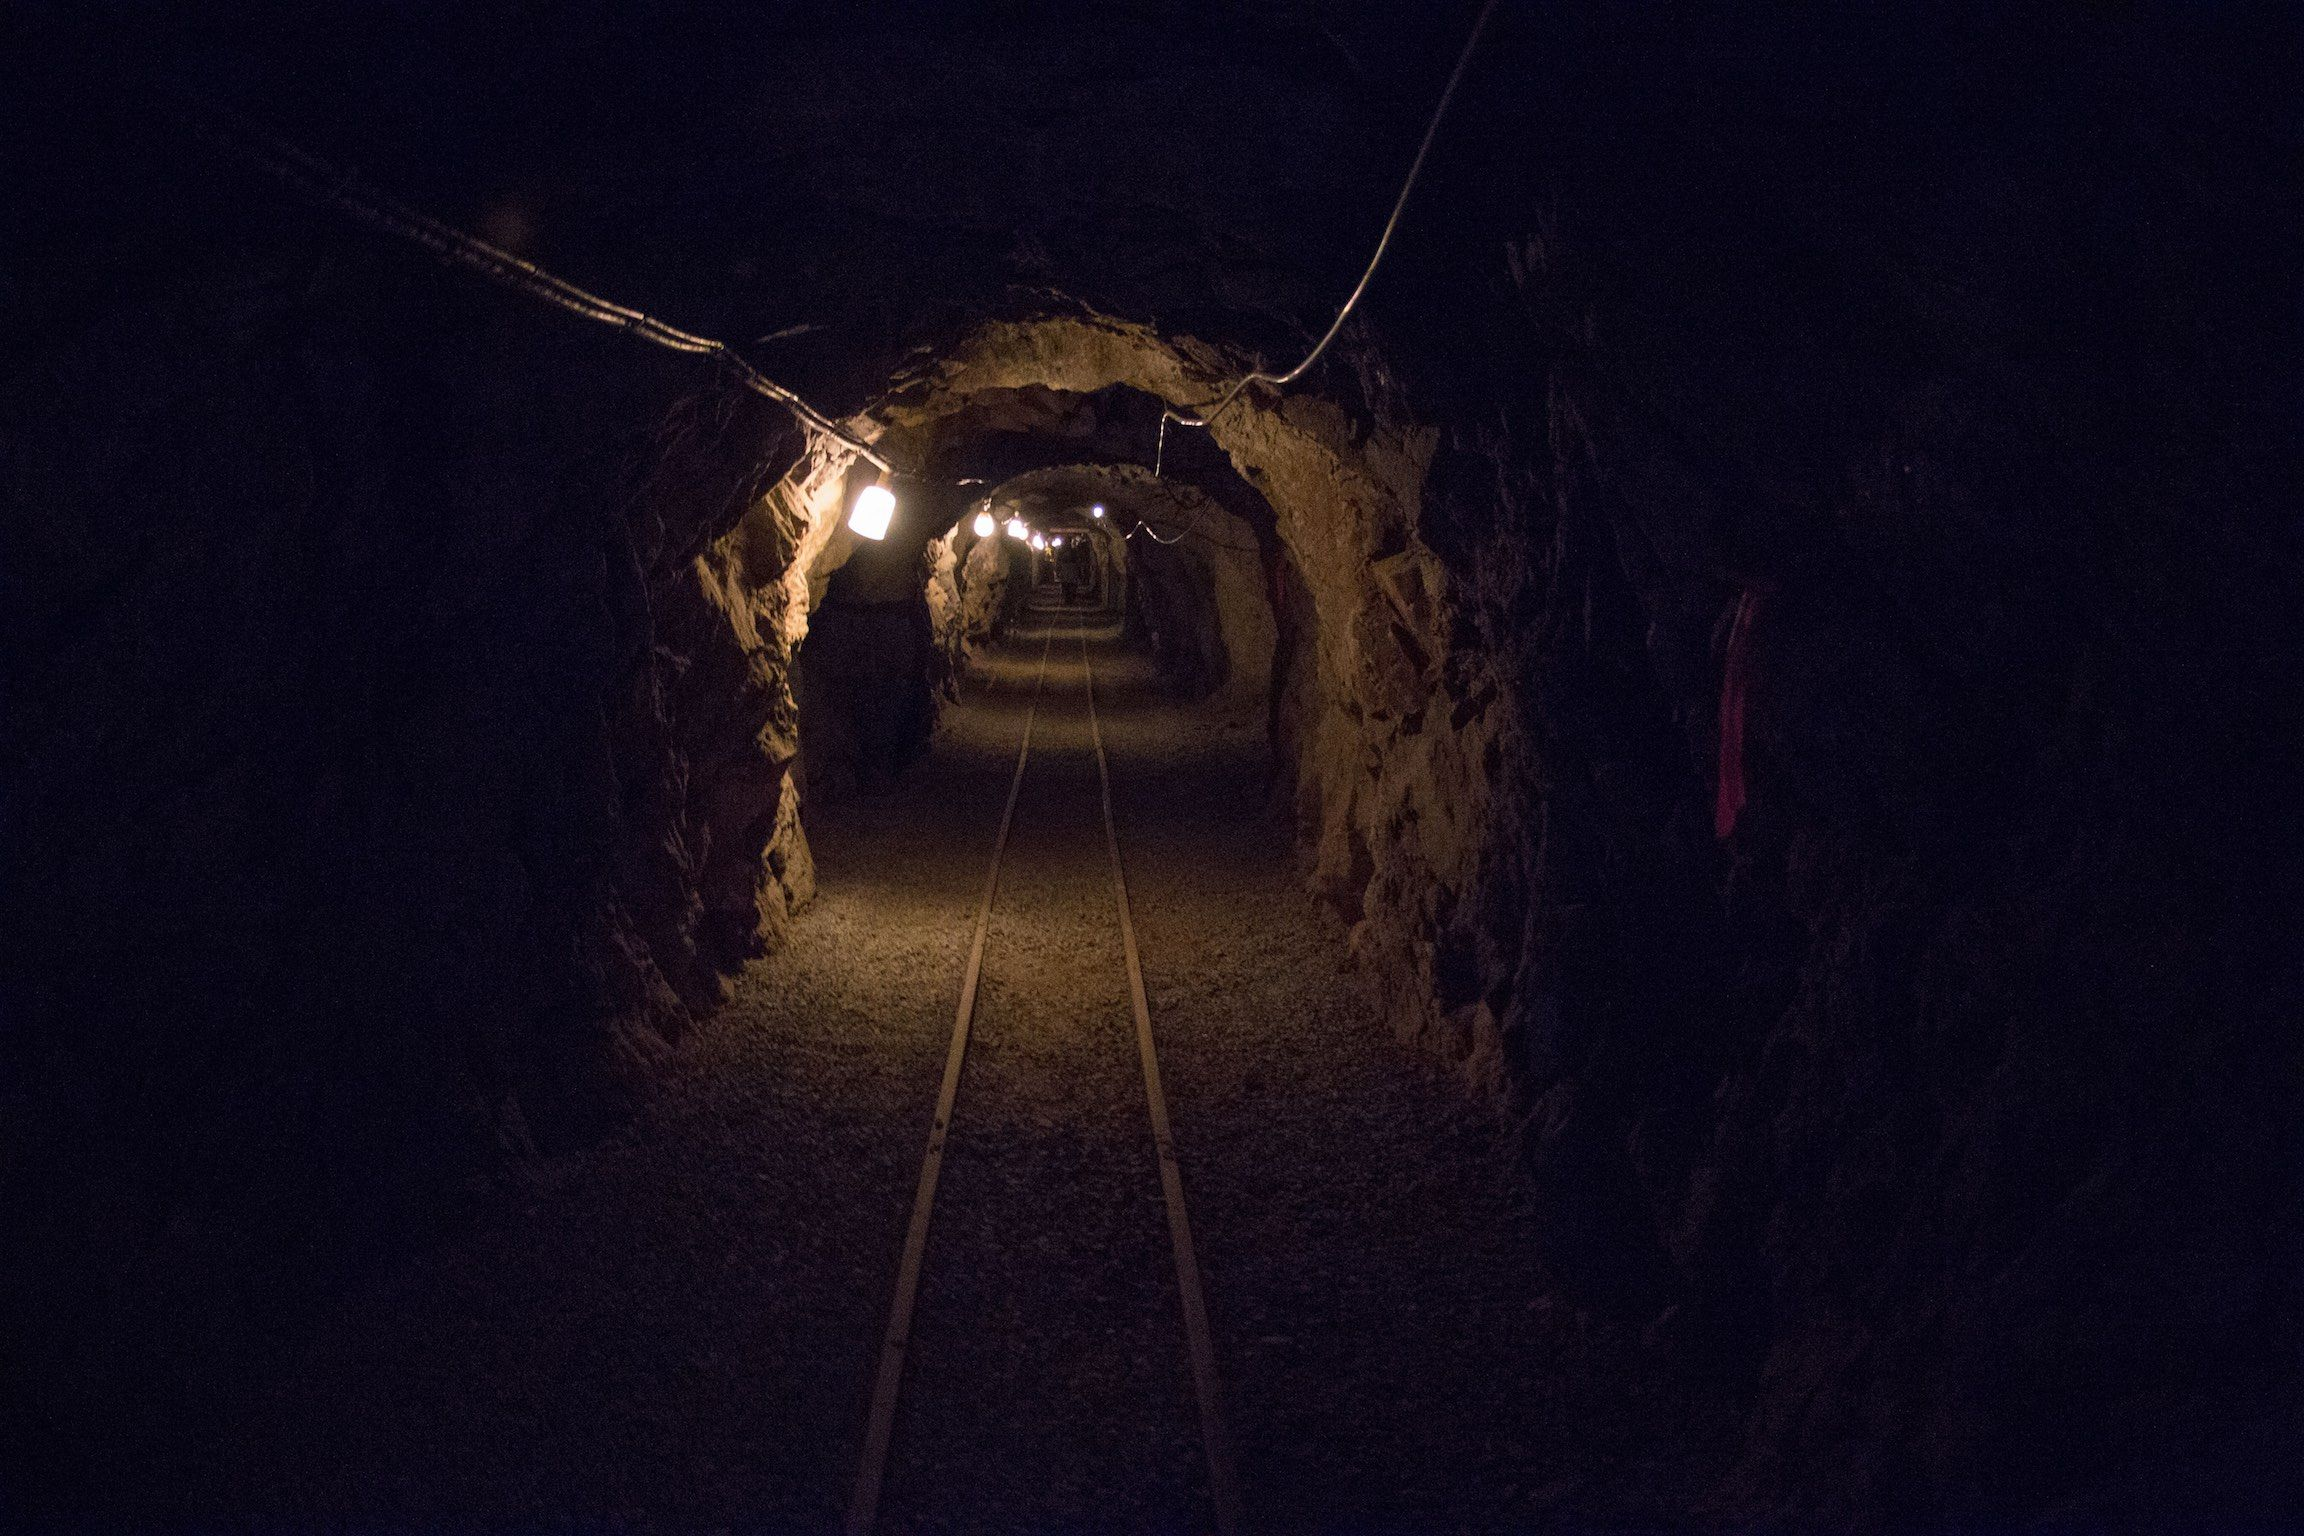 Nine teams of humans and robots will make their way to the Edgar Experimental Mine in Idaho Springs, Colo., to participate in an initial exercise for the DARPA Subterranean Challenge